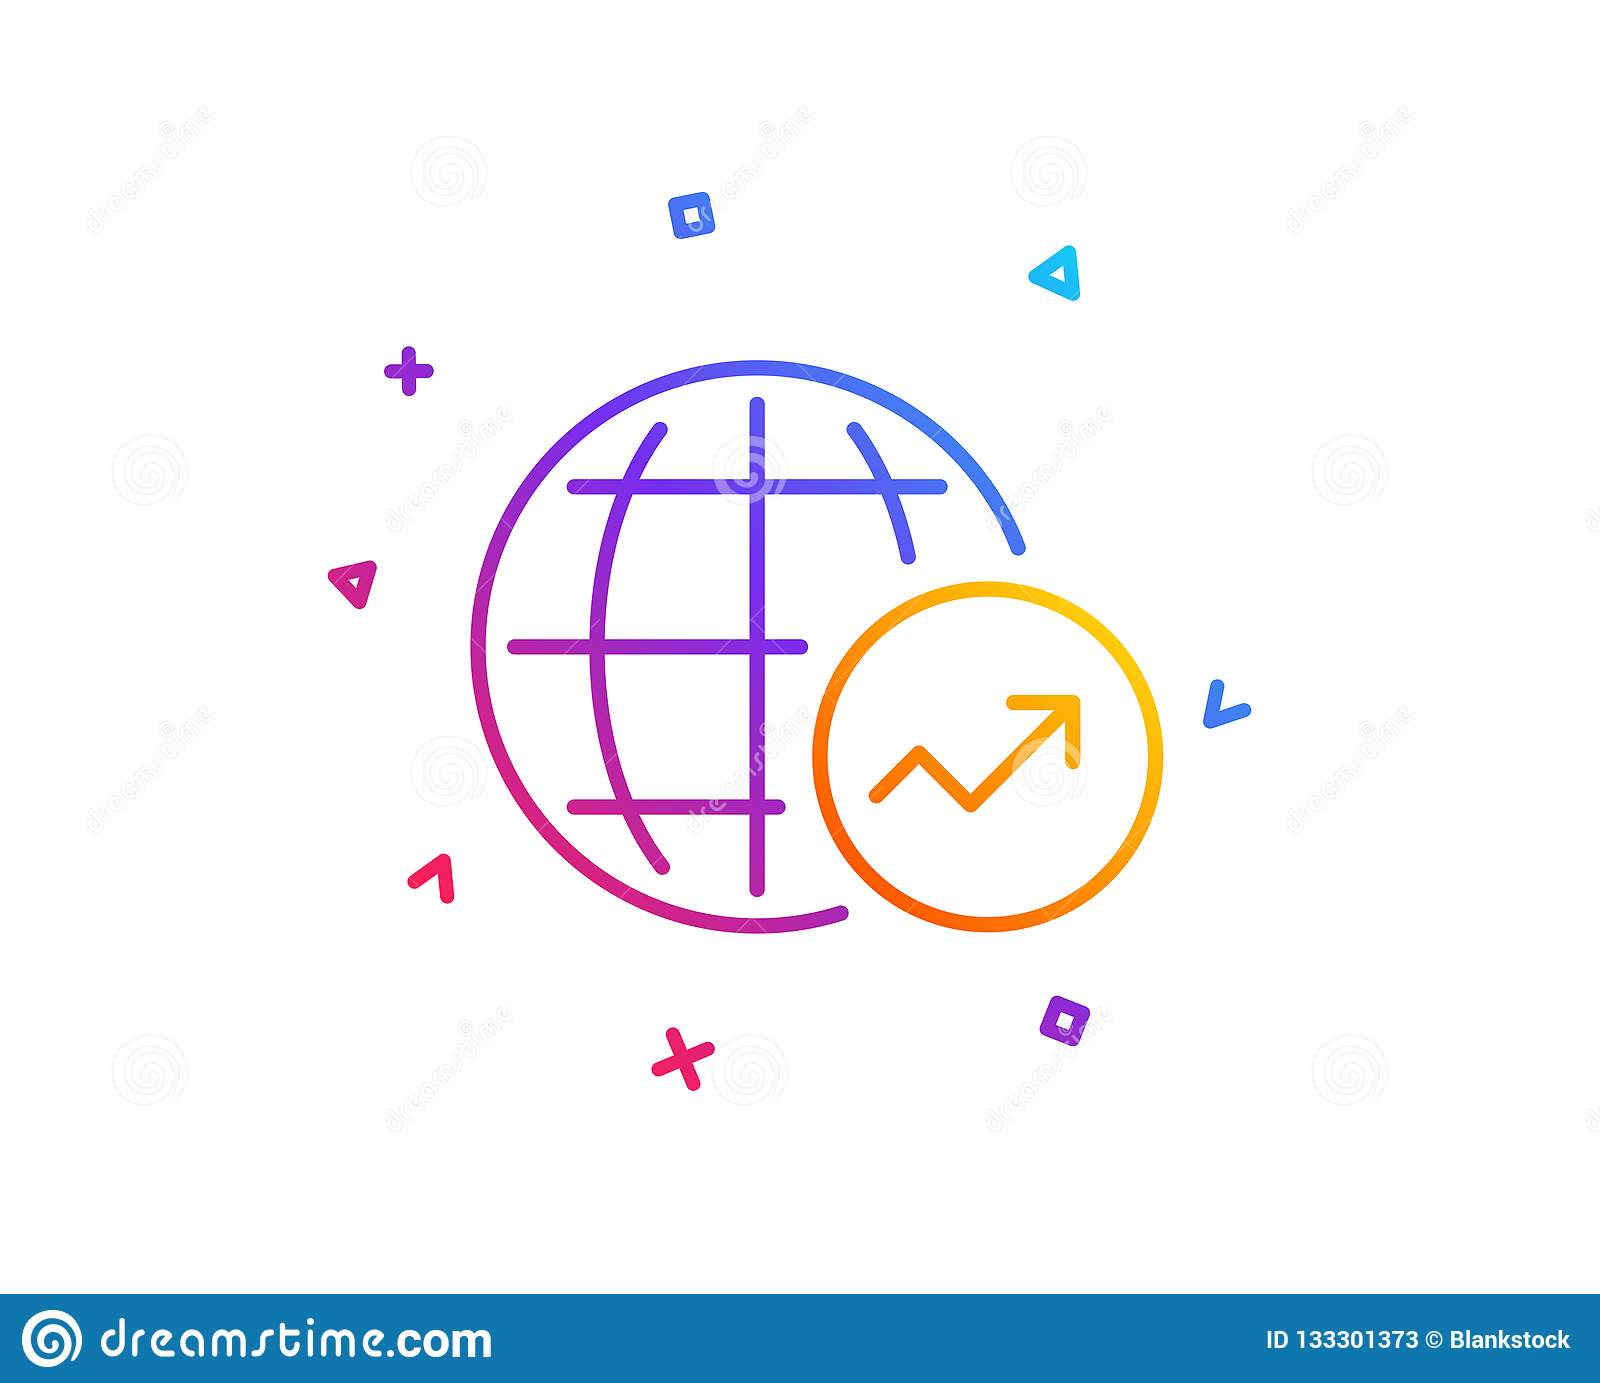 hight resolution of world statistics line icon chart sign vector